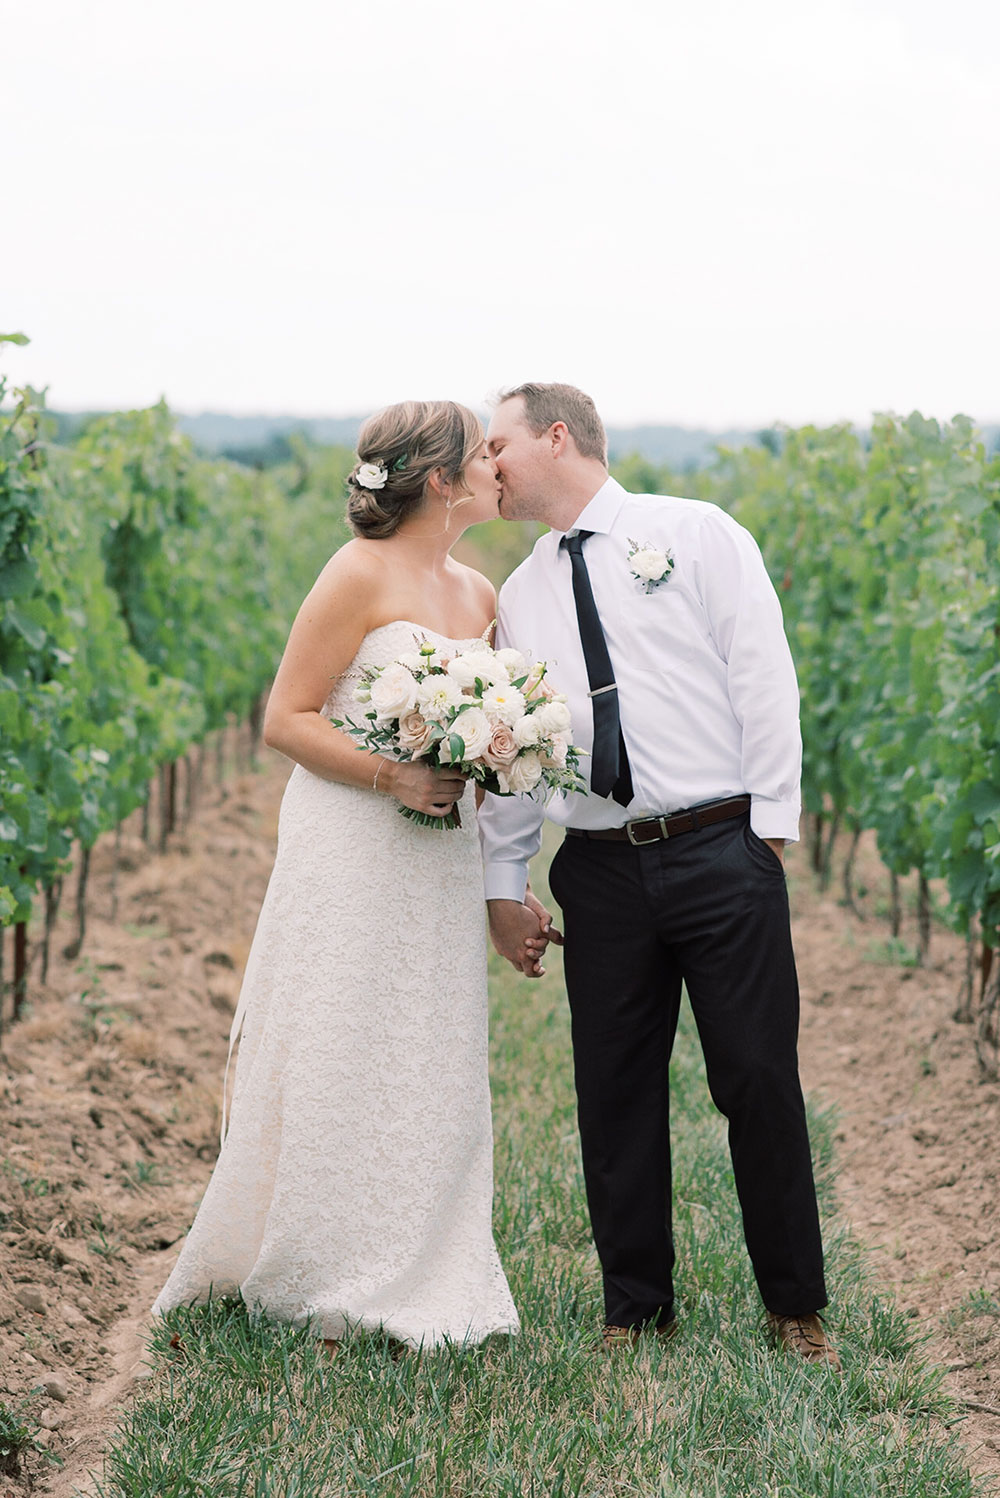 Niagara-on-the-Lake-Elopement-Vineyard-Bride-photo-by-Emily-Jean-Photography-0024.JPG